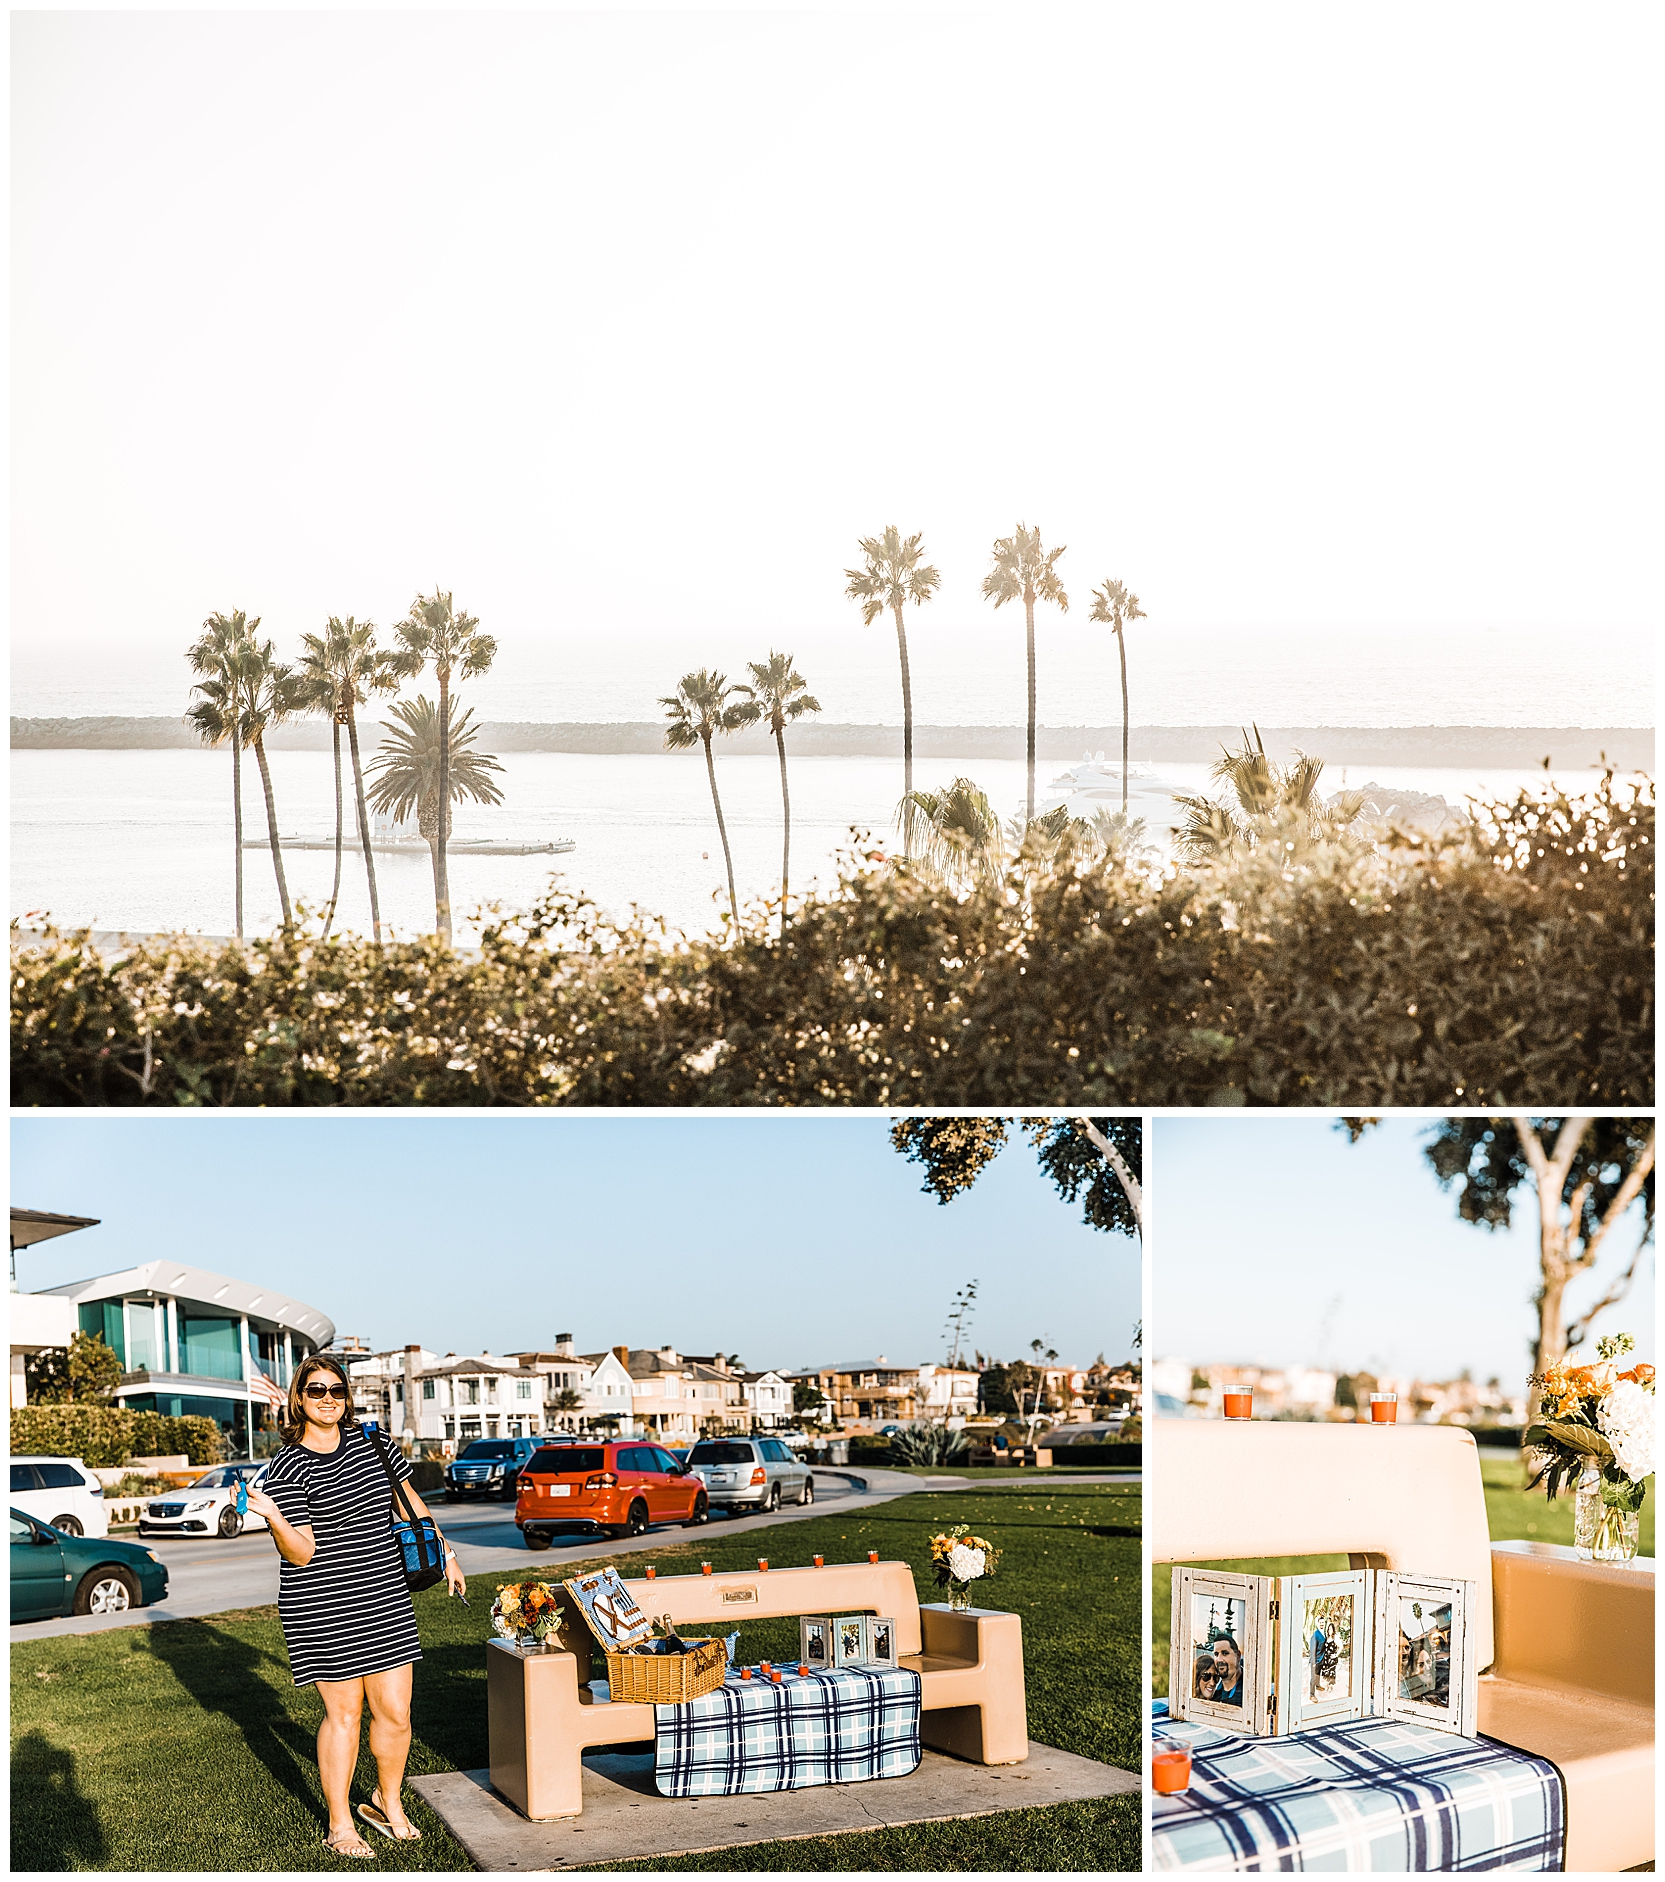 jessicafredericks_huntingtonbeach_proposal_sunset_engagement_0002.jpg